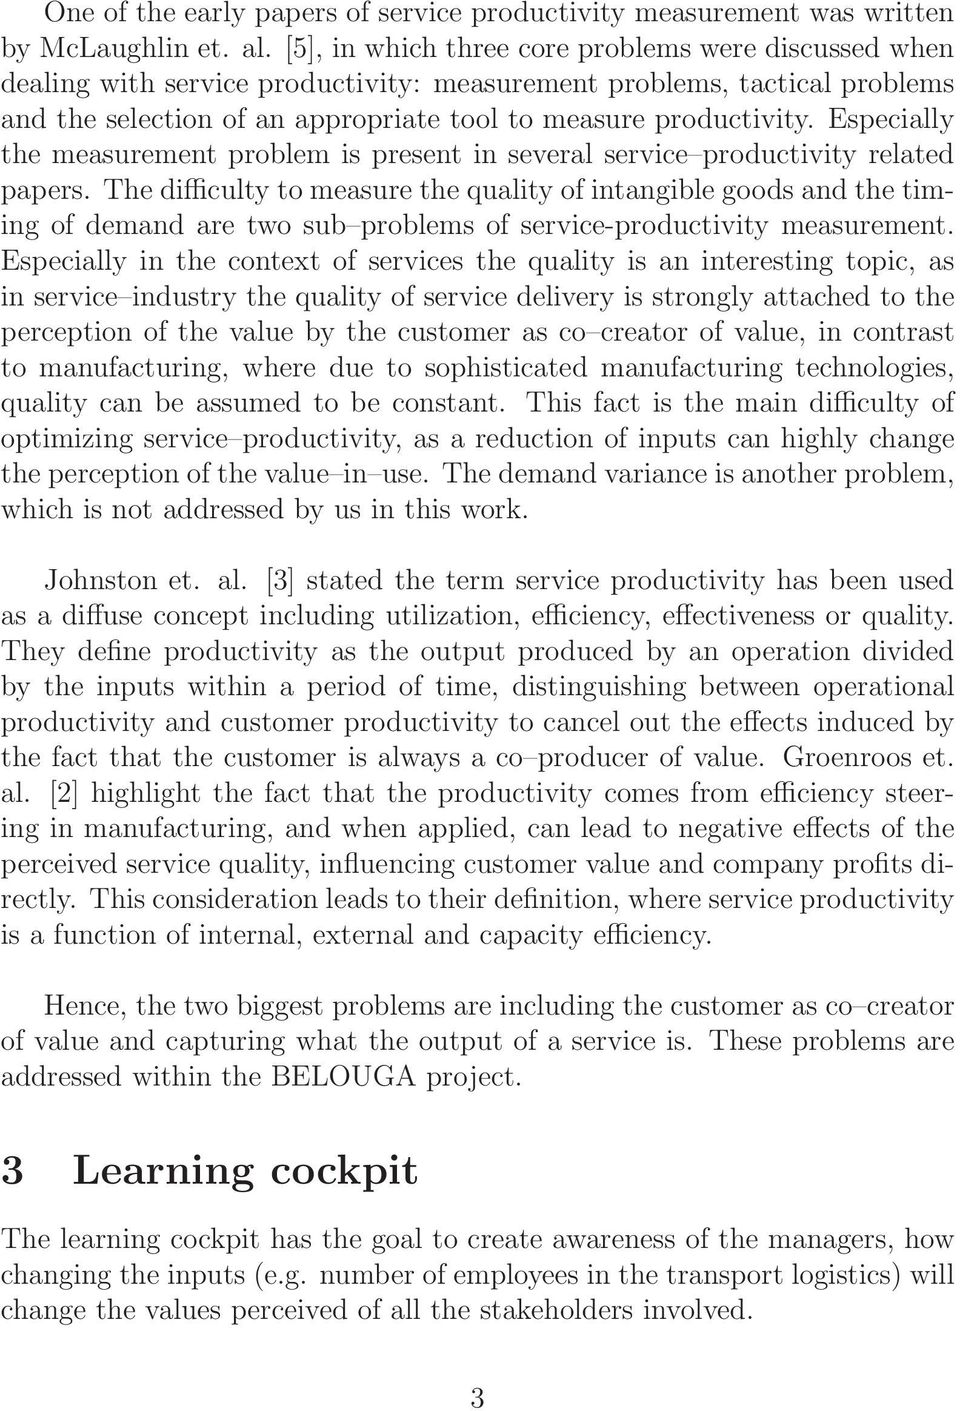 Especially the measurement problem is present in several service productivity related papers.